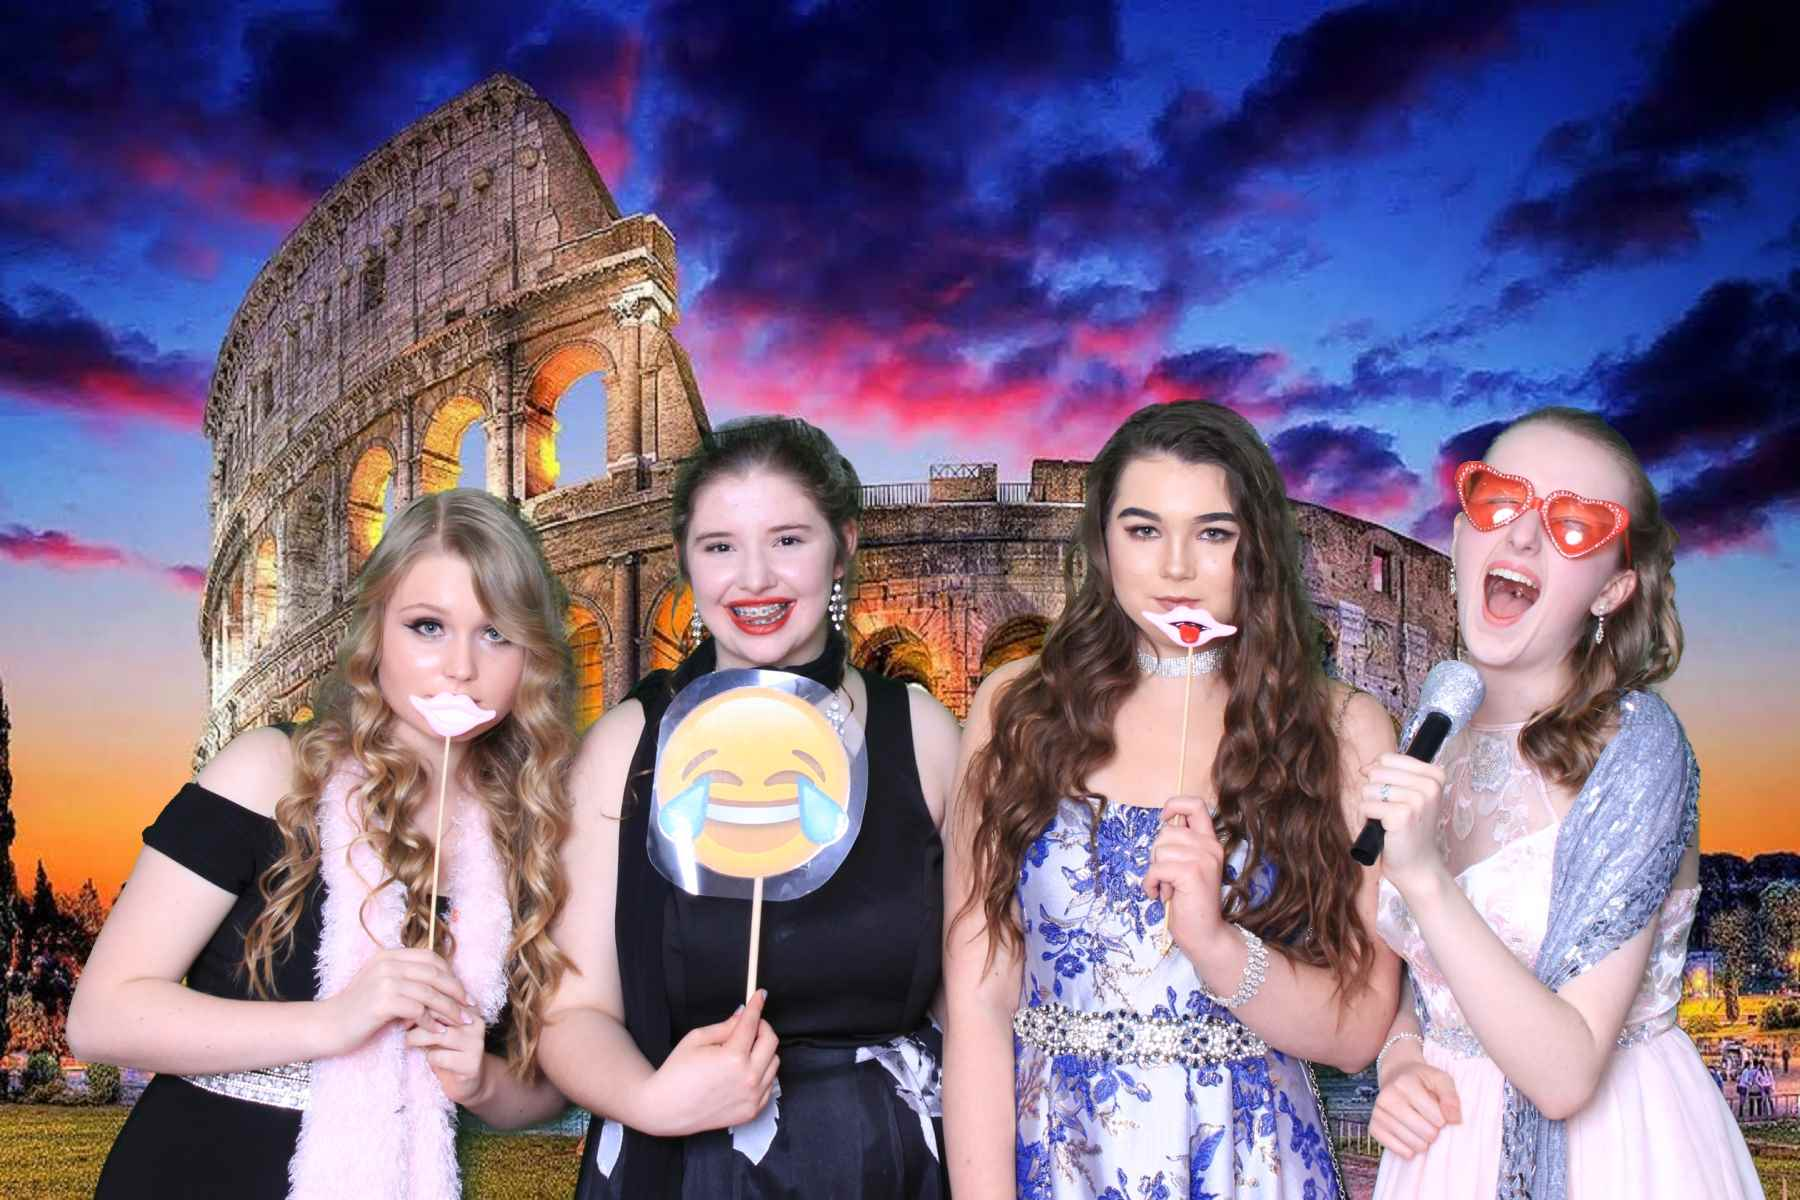 4 girls having a great time at prom with props